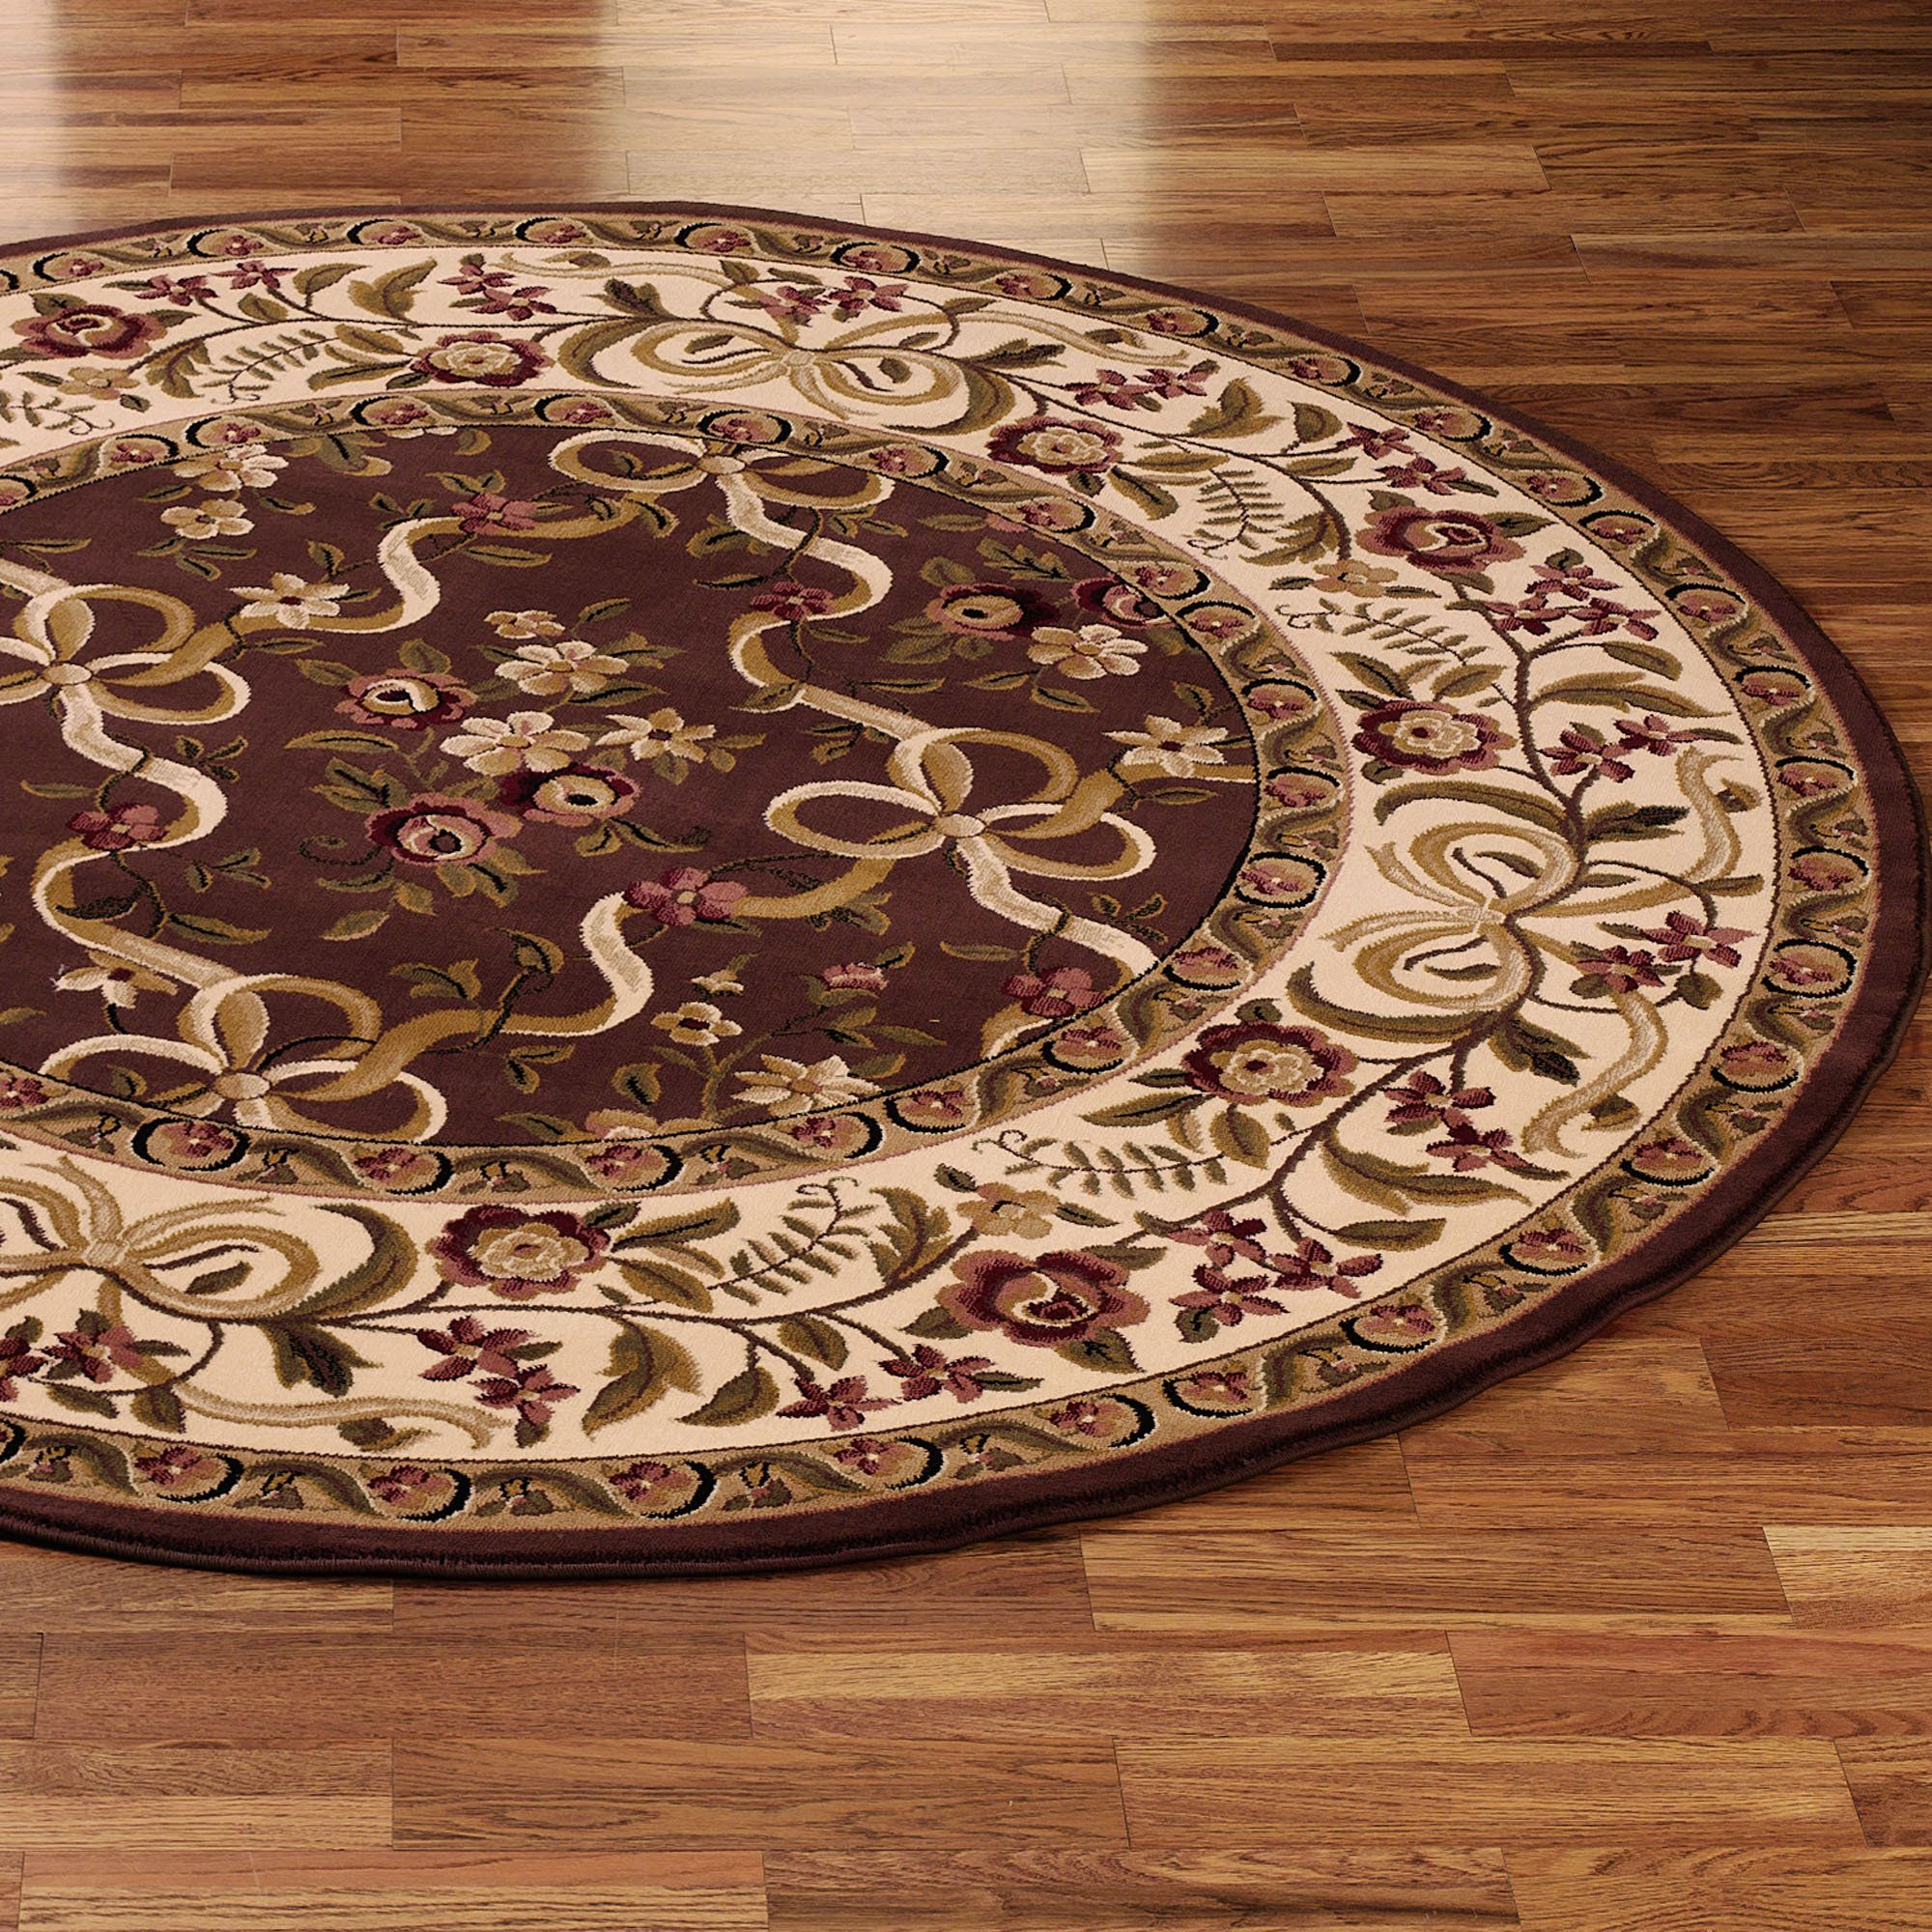 Charming Round Rugs 6 Ft Designs